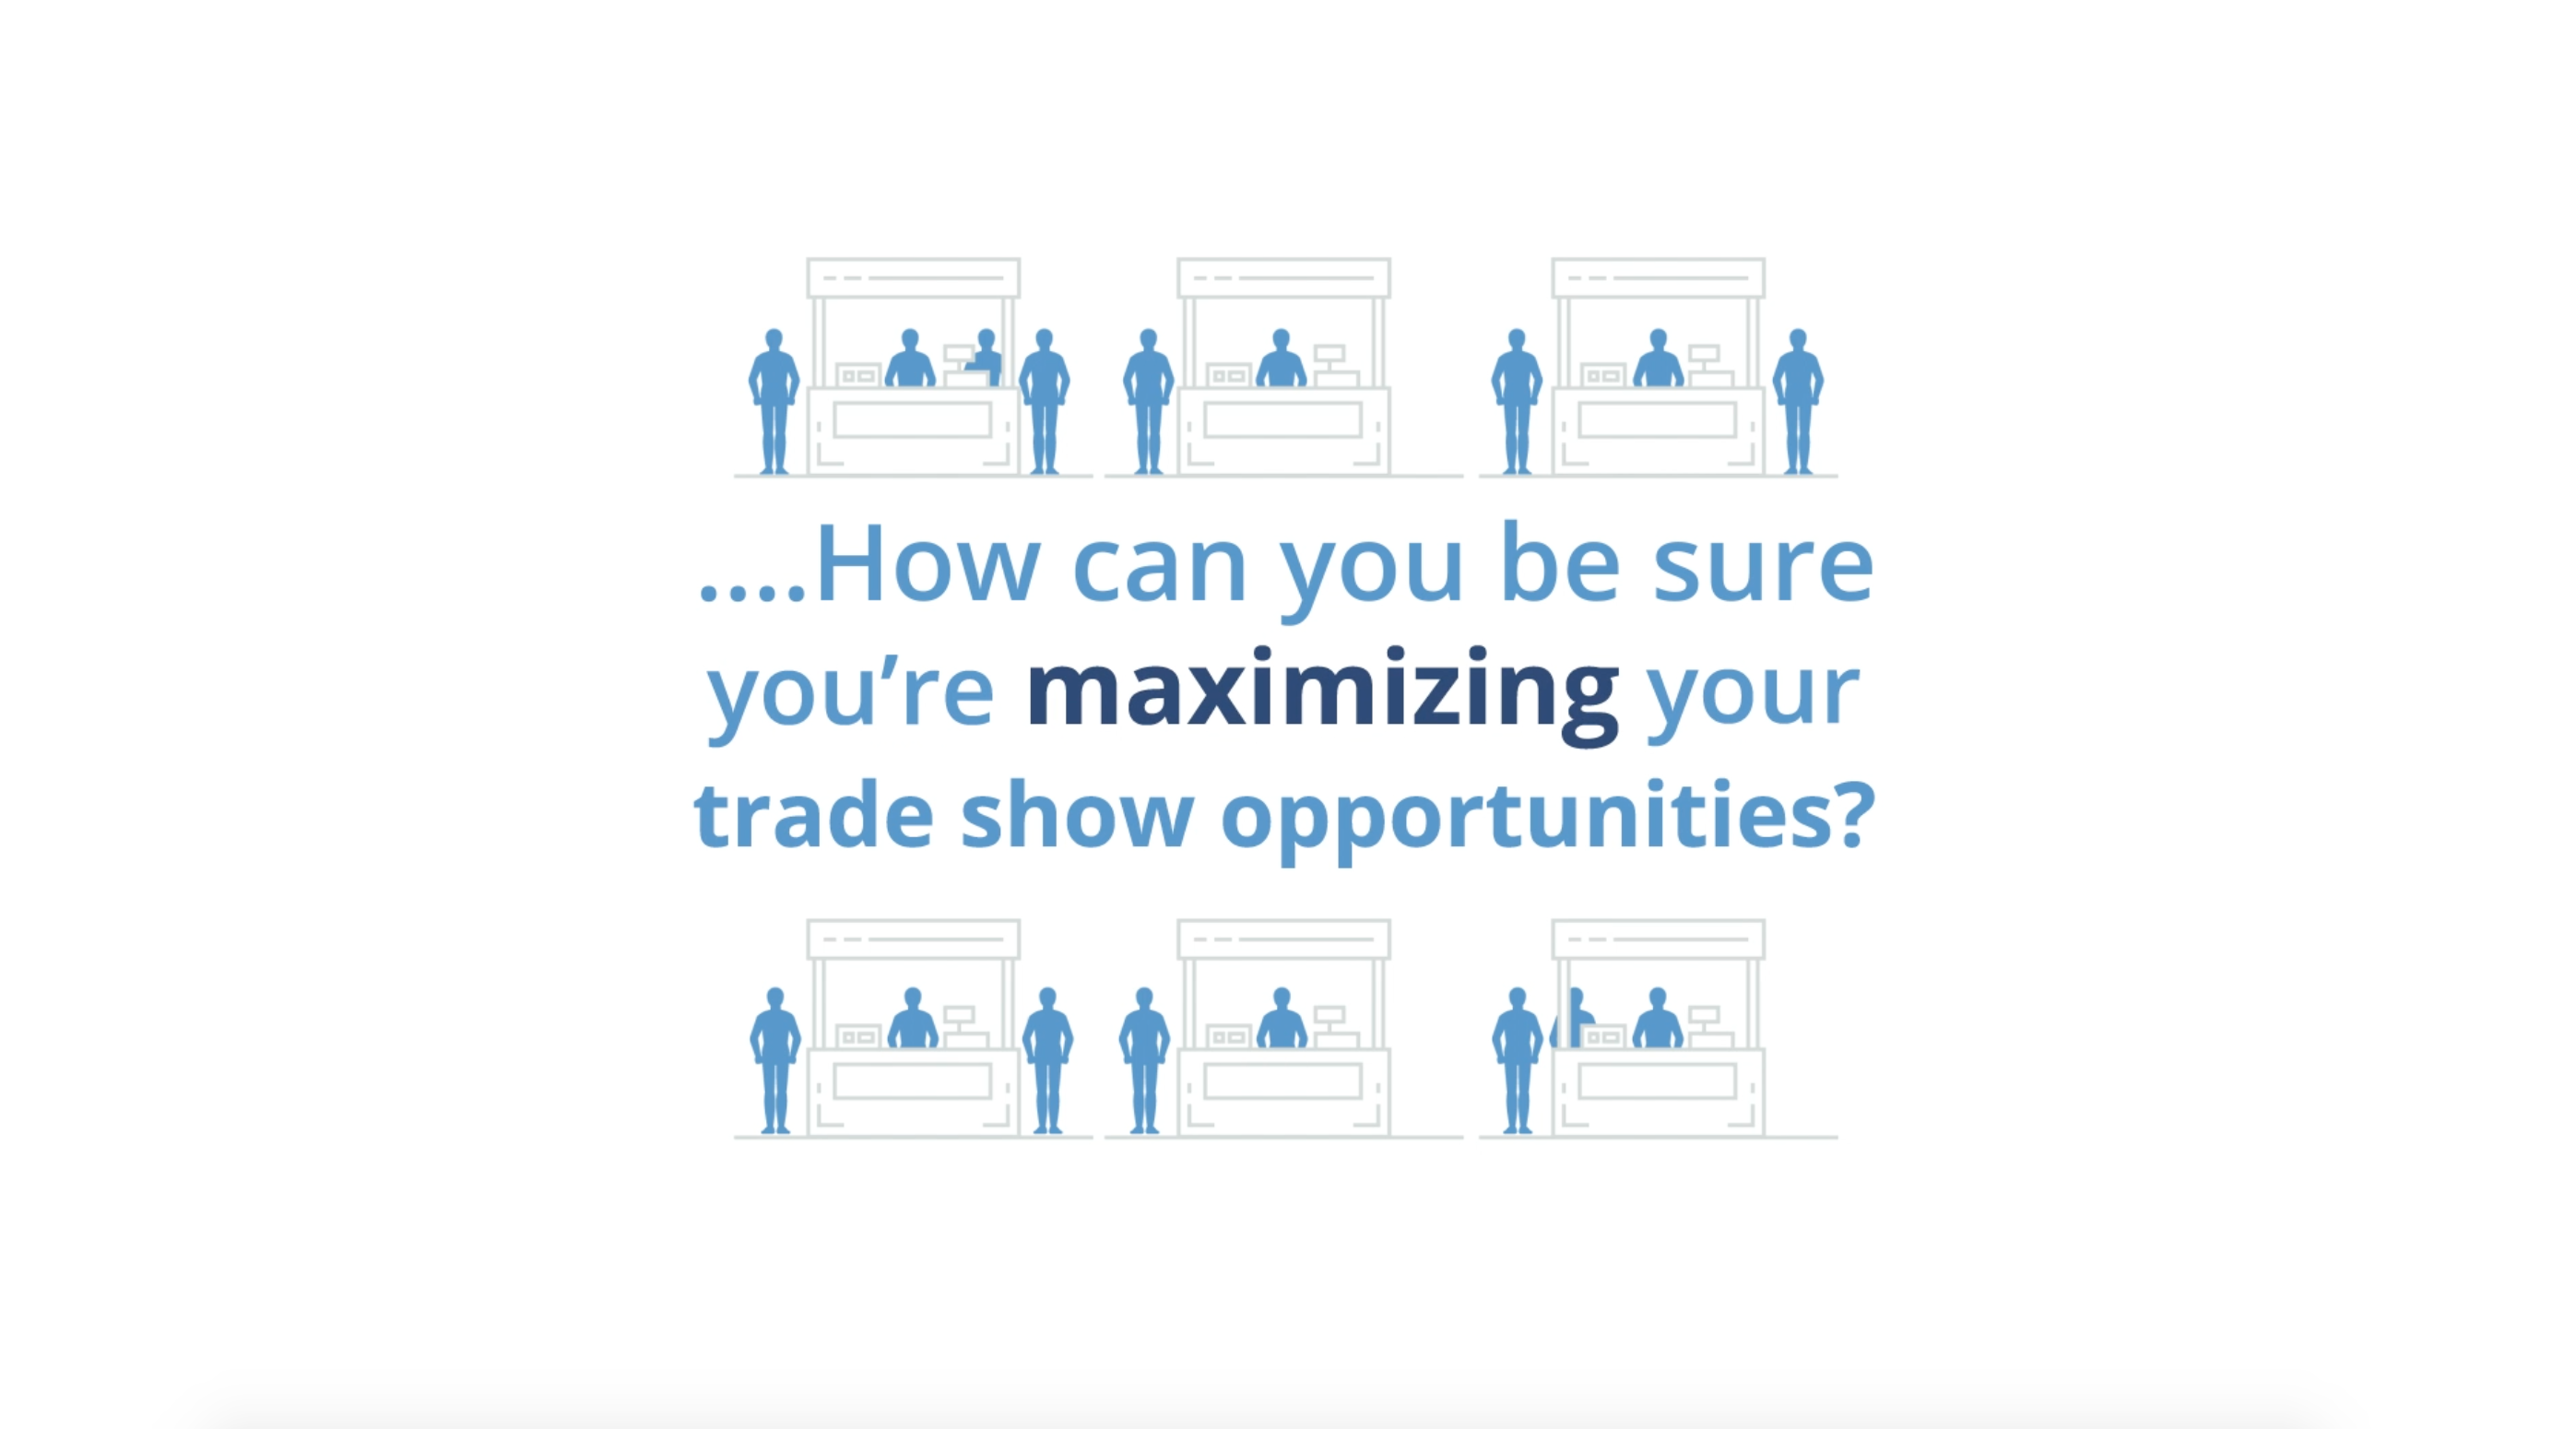 Trade show lead opportunities